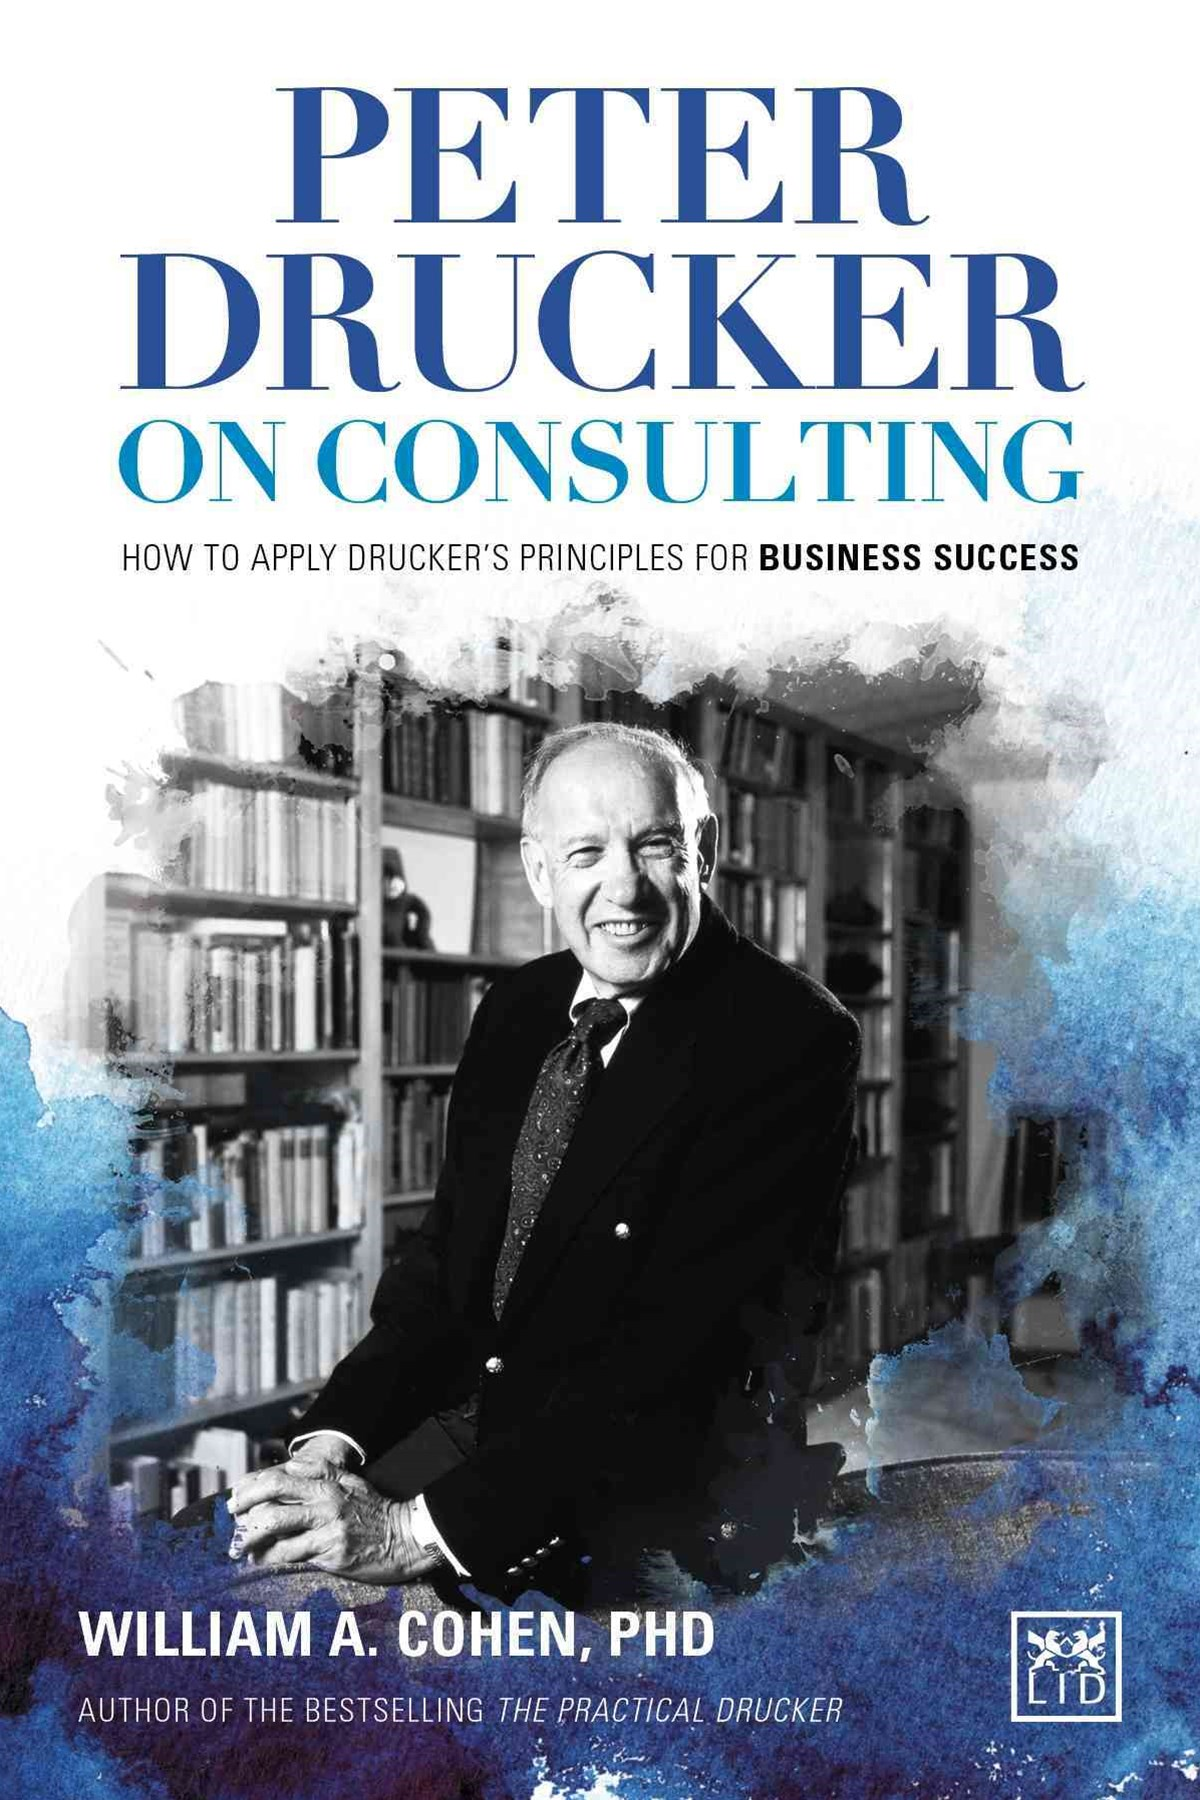 Peter Drucker on Consulting